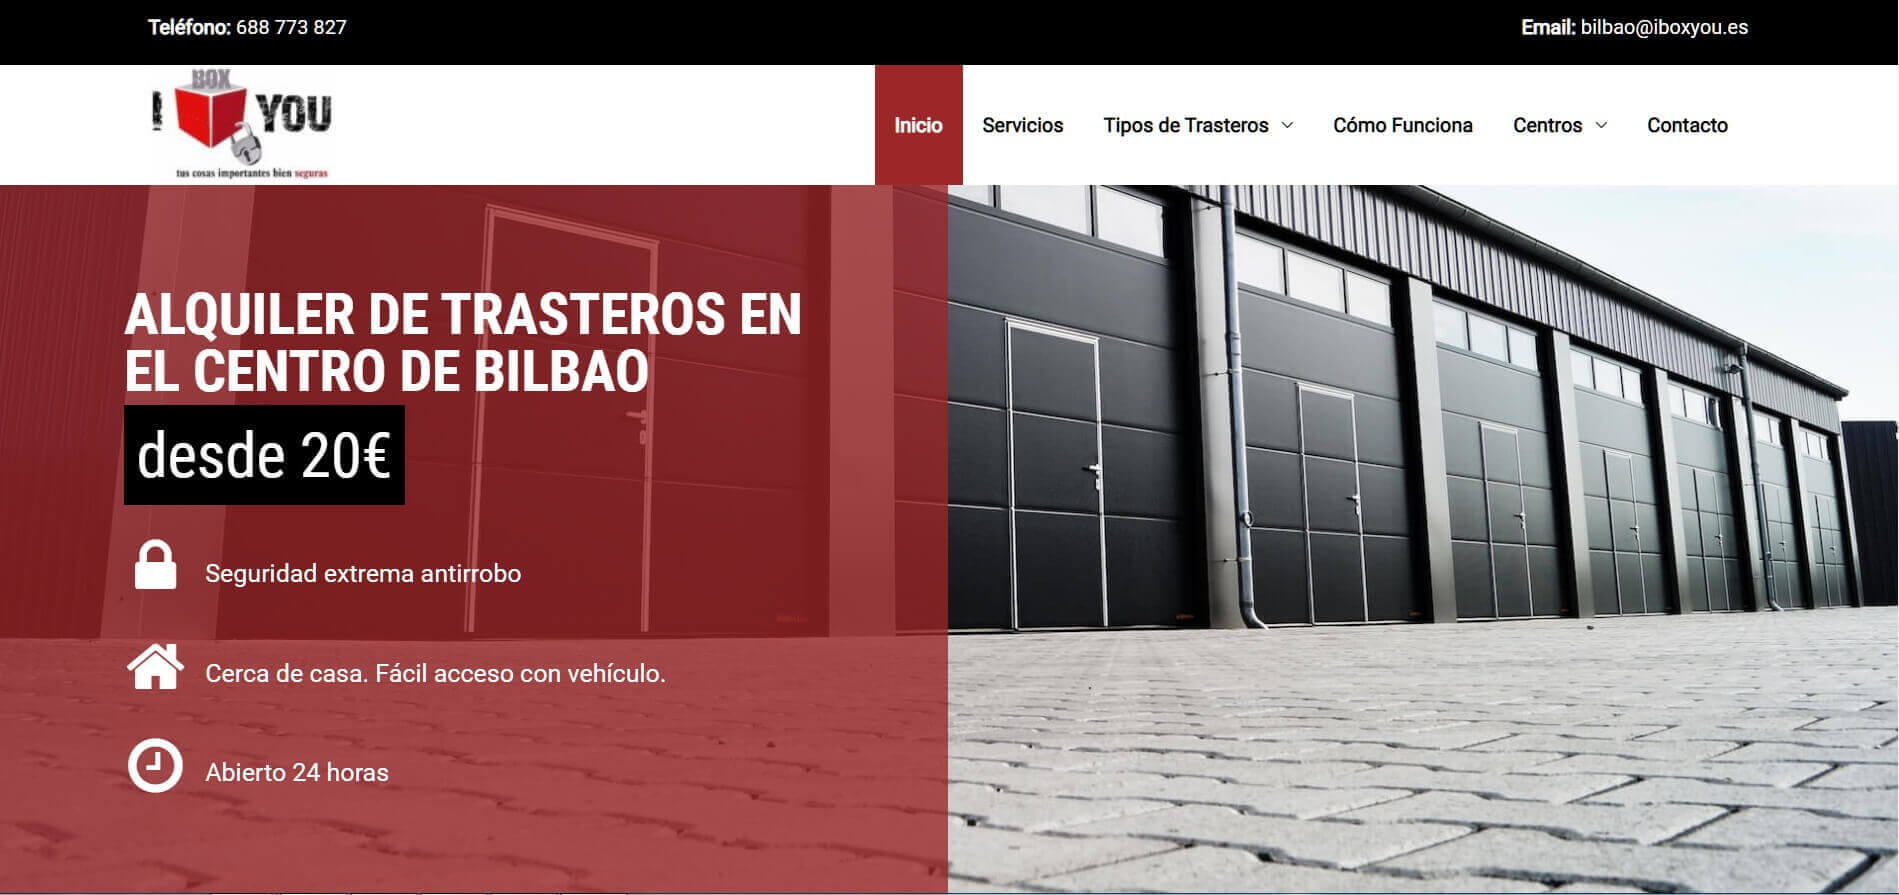 Diseño de paginas web en Bilbao, expertos en seo local y google ads